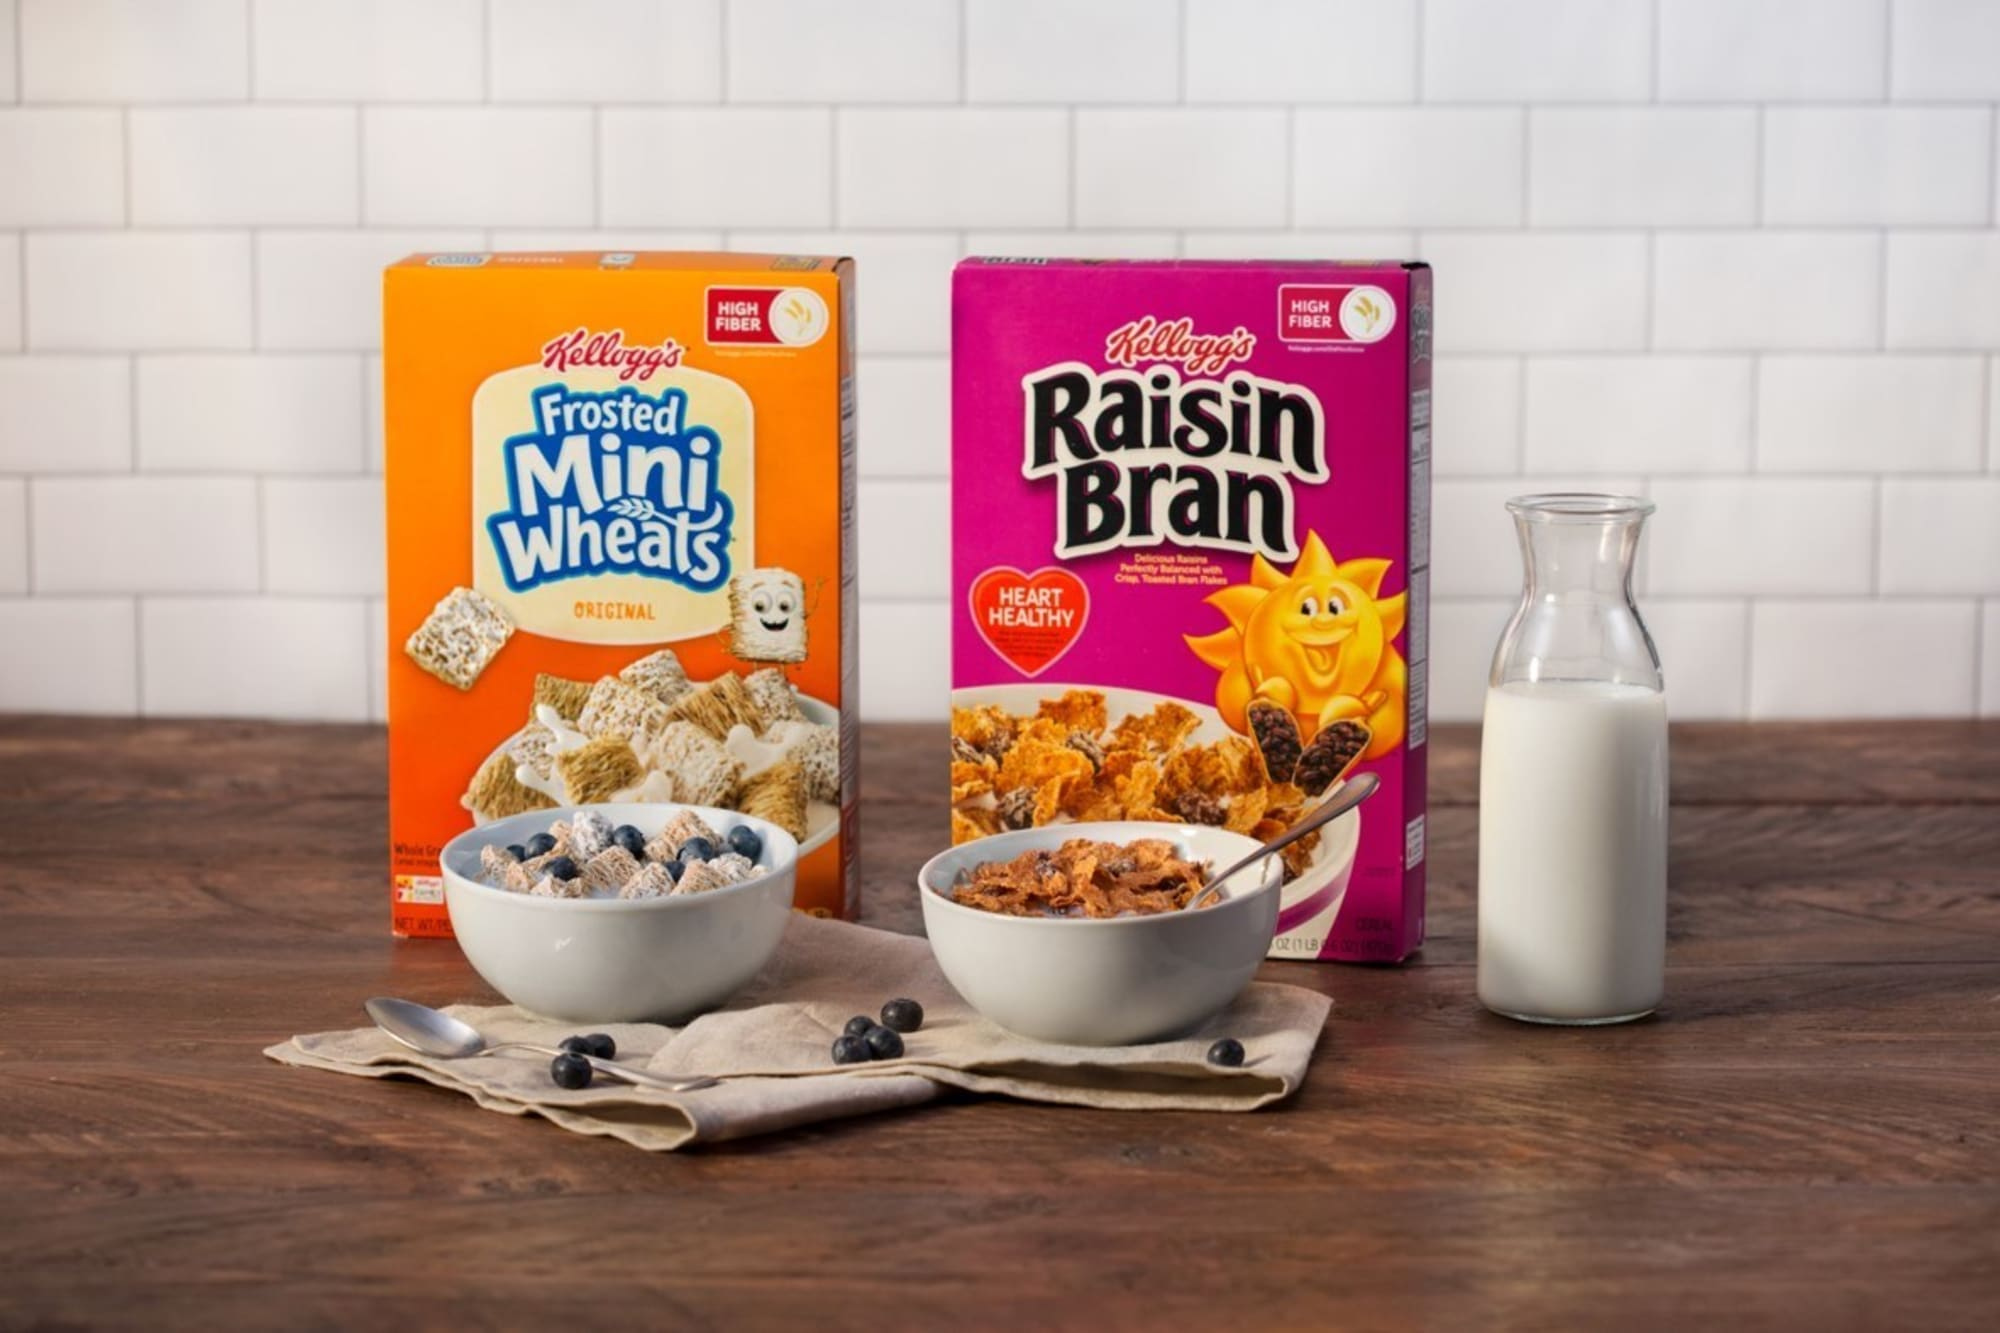 Top 10 best cereal brands: Which is America's favorite?